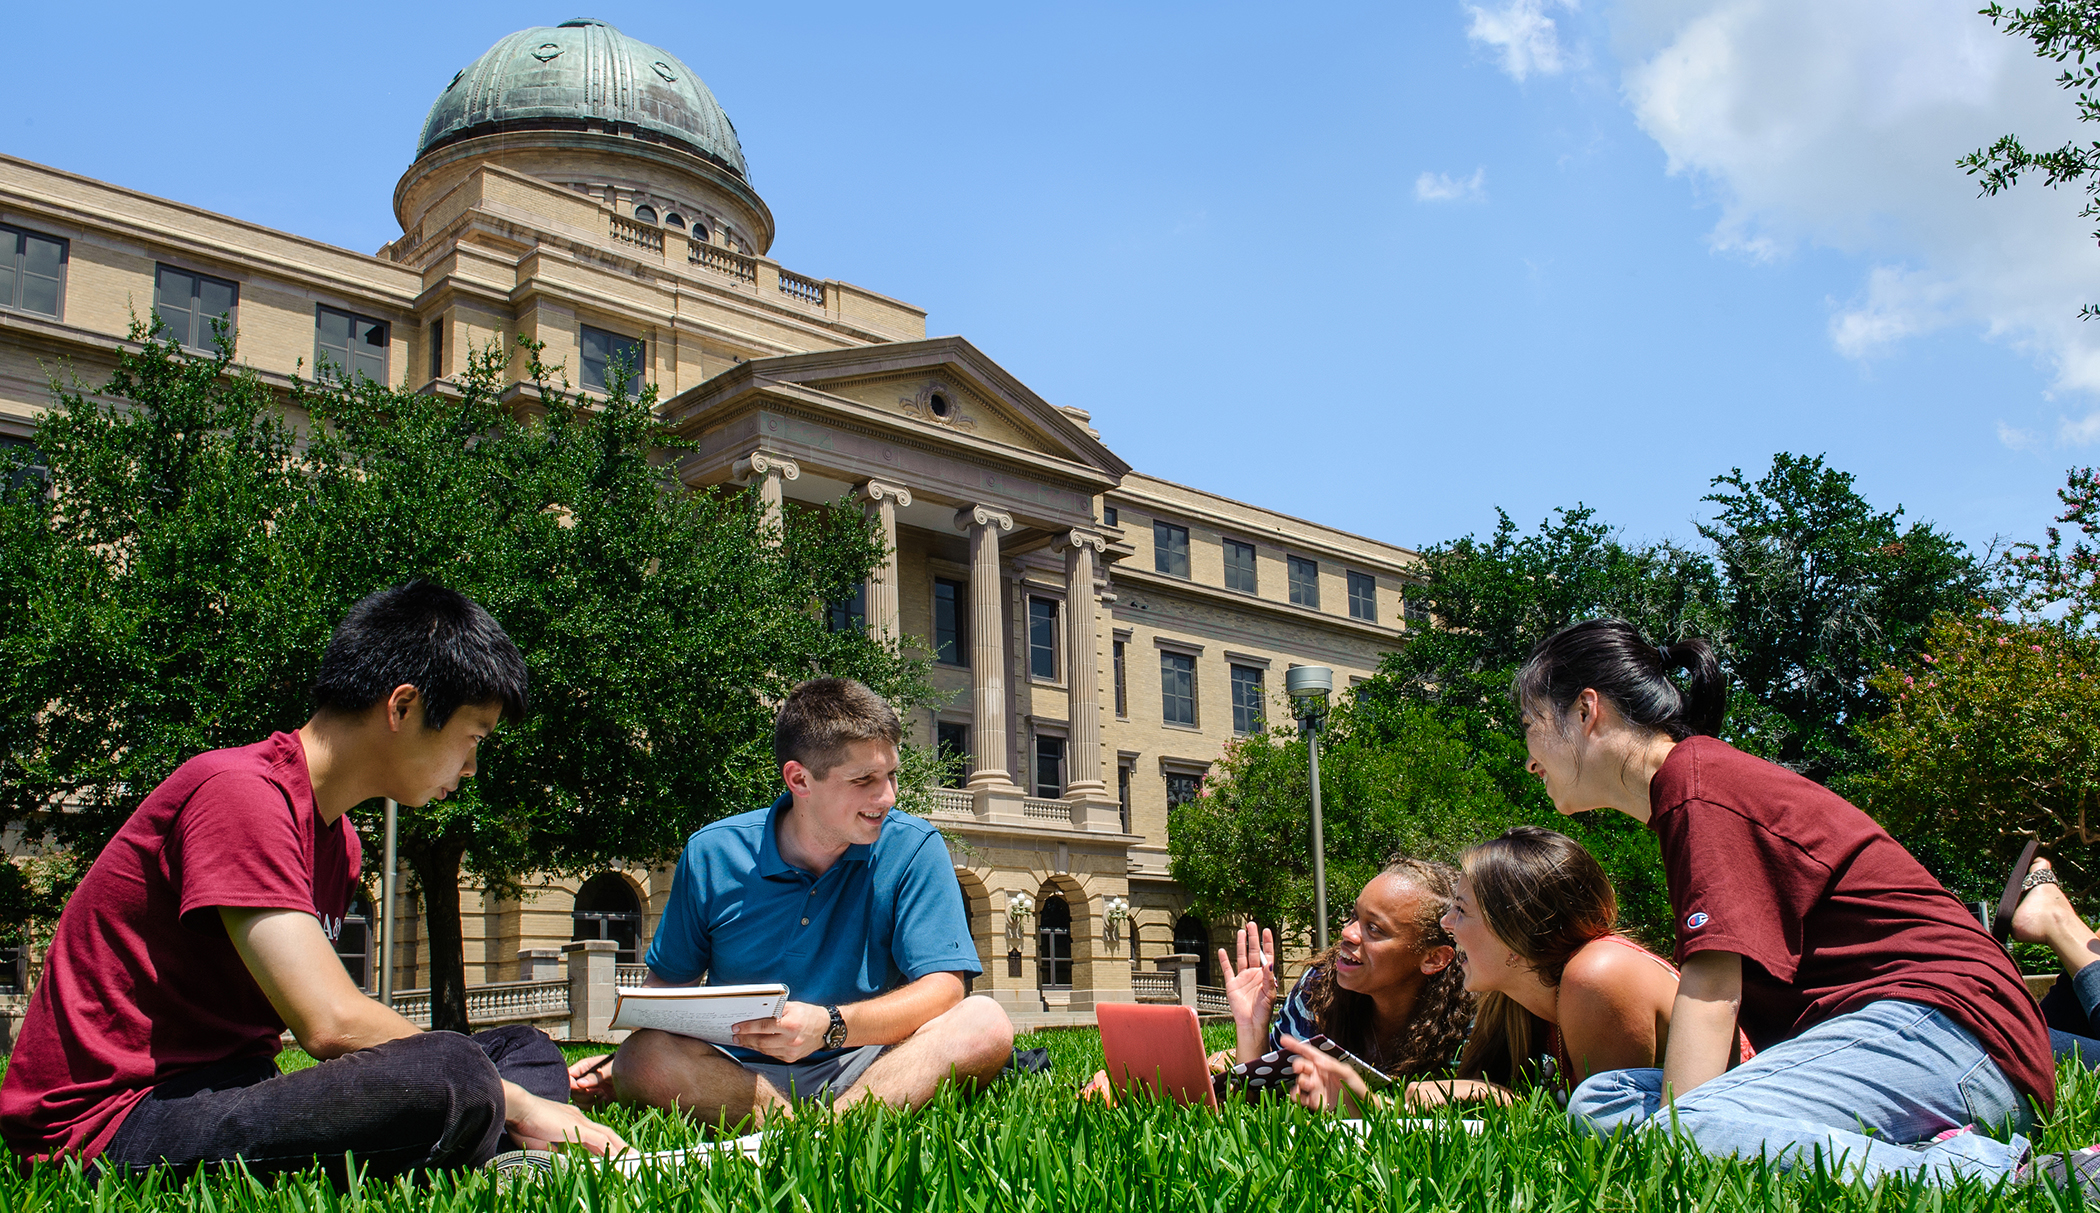 The 15 Best Public Colleges in the U.S.